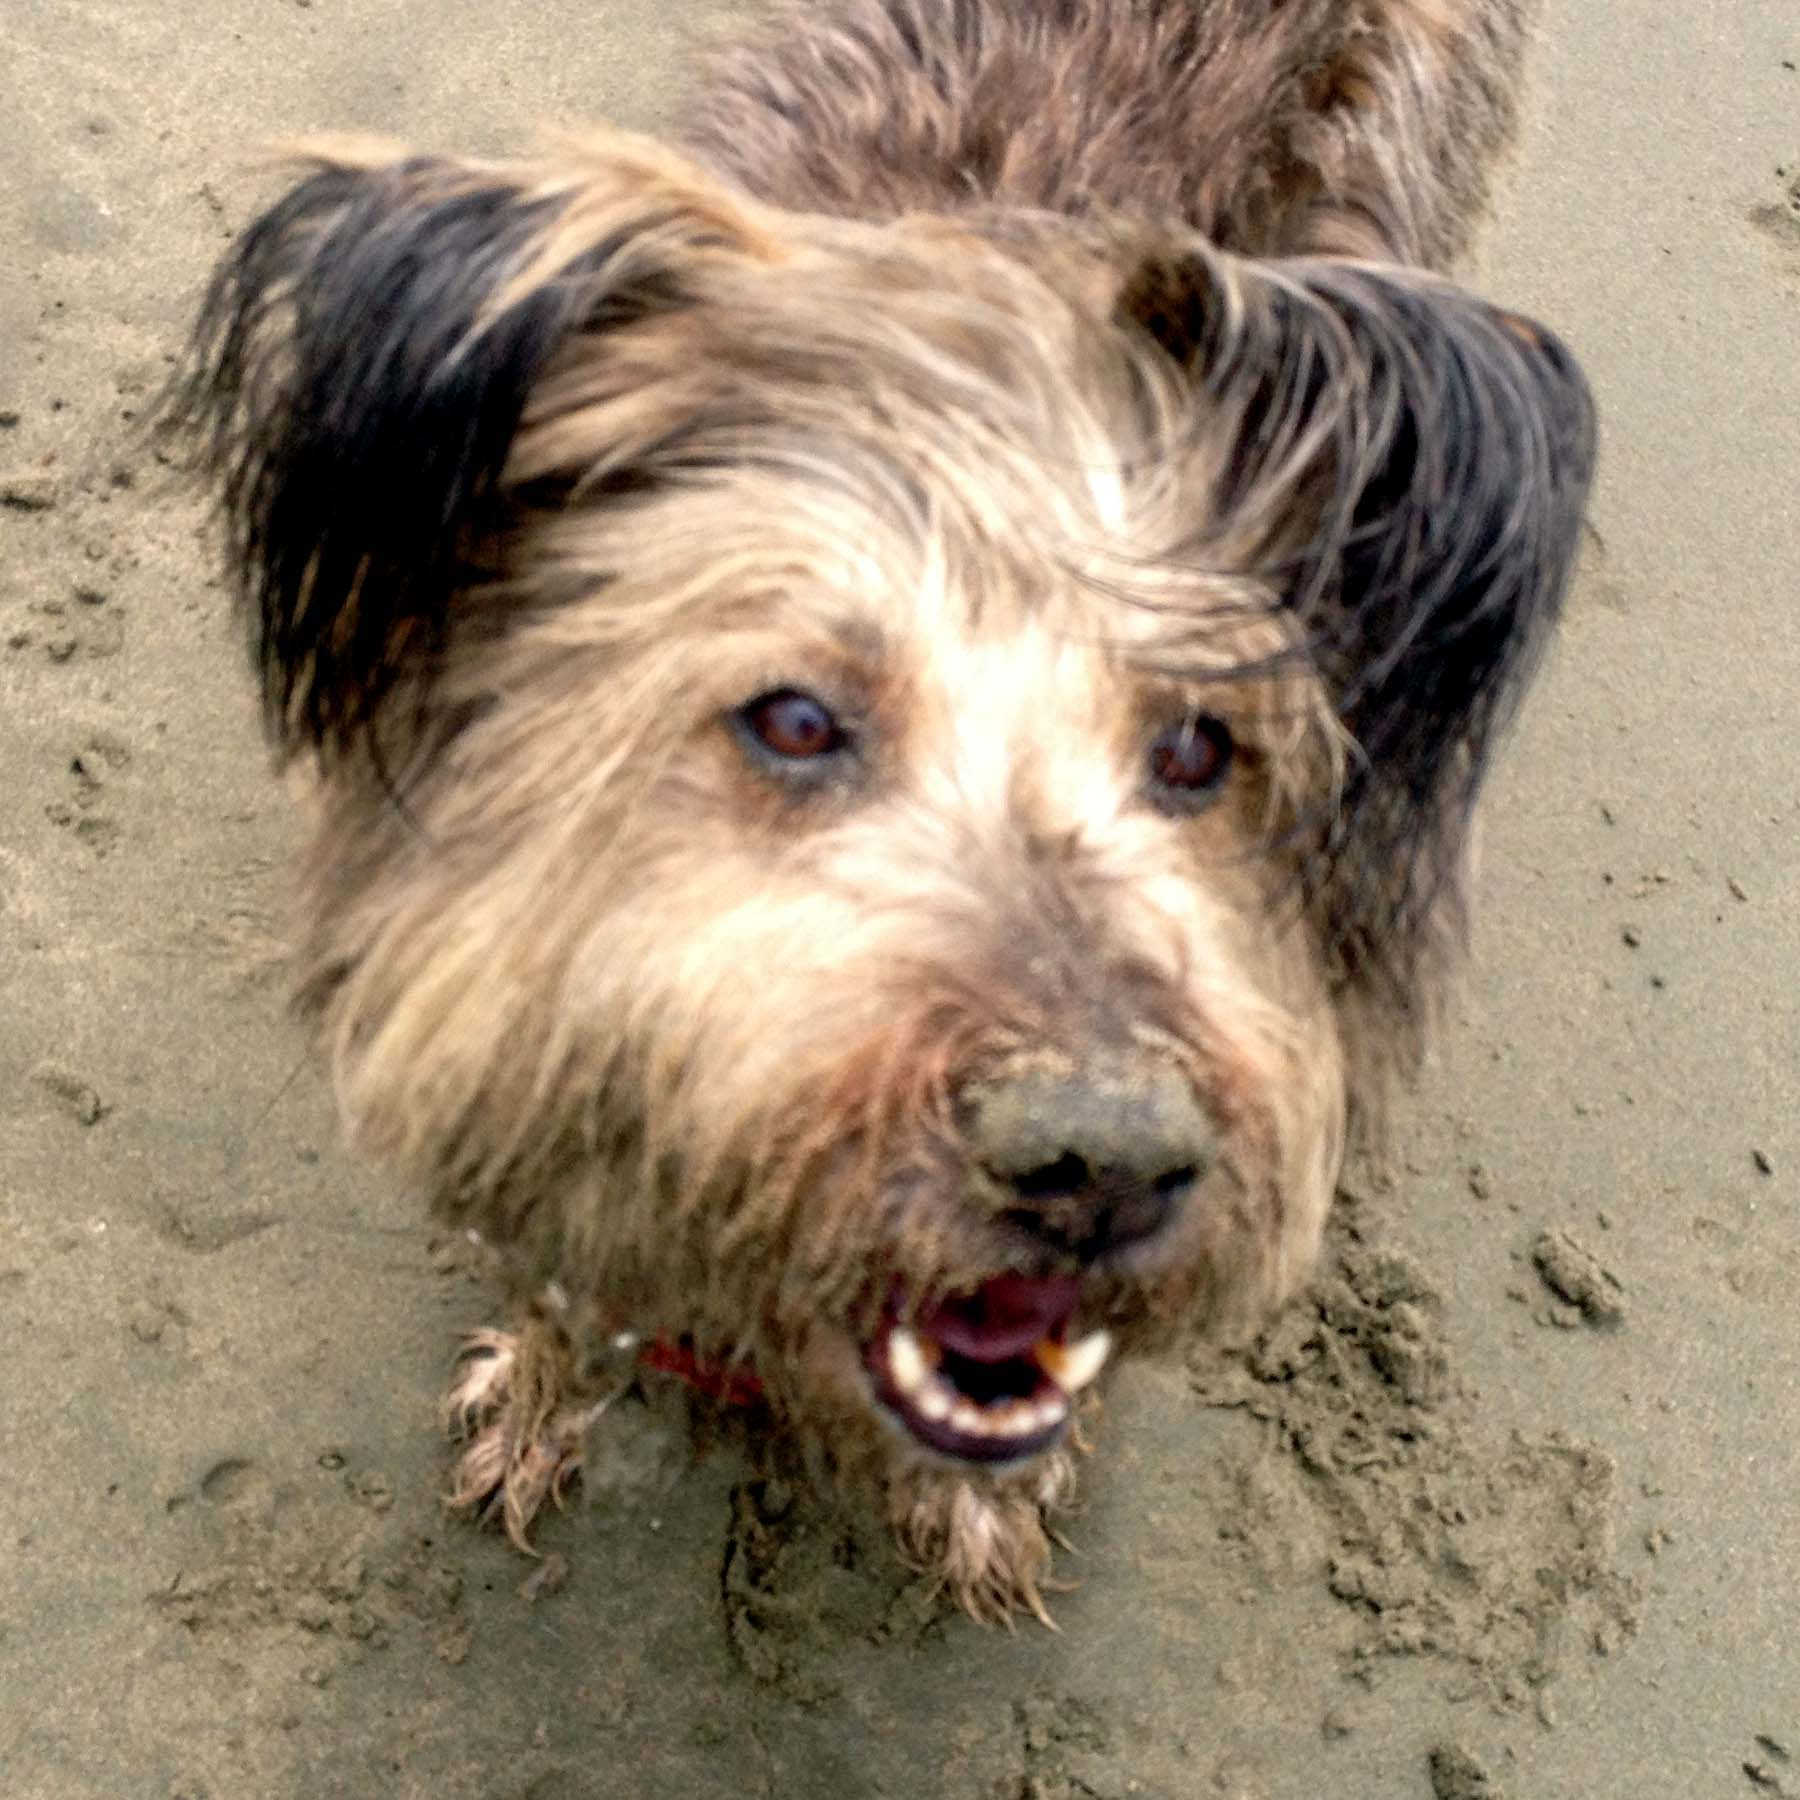 Eddie is all sandy & wet